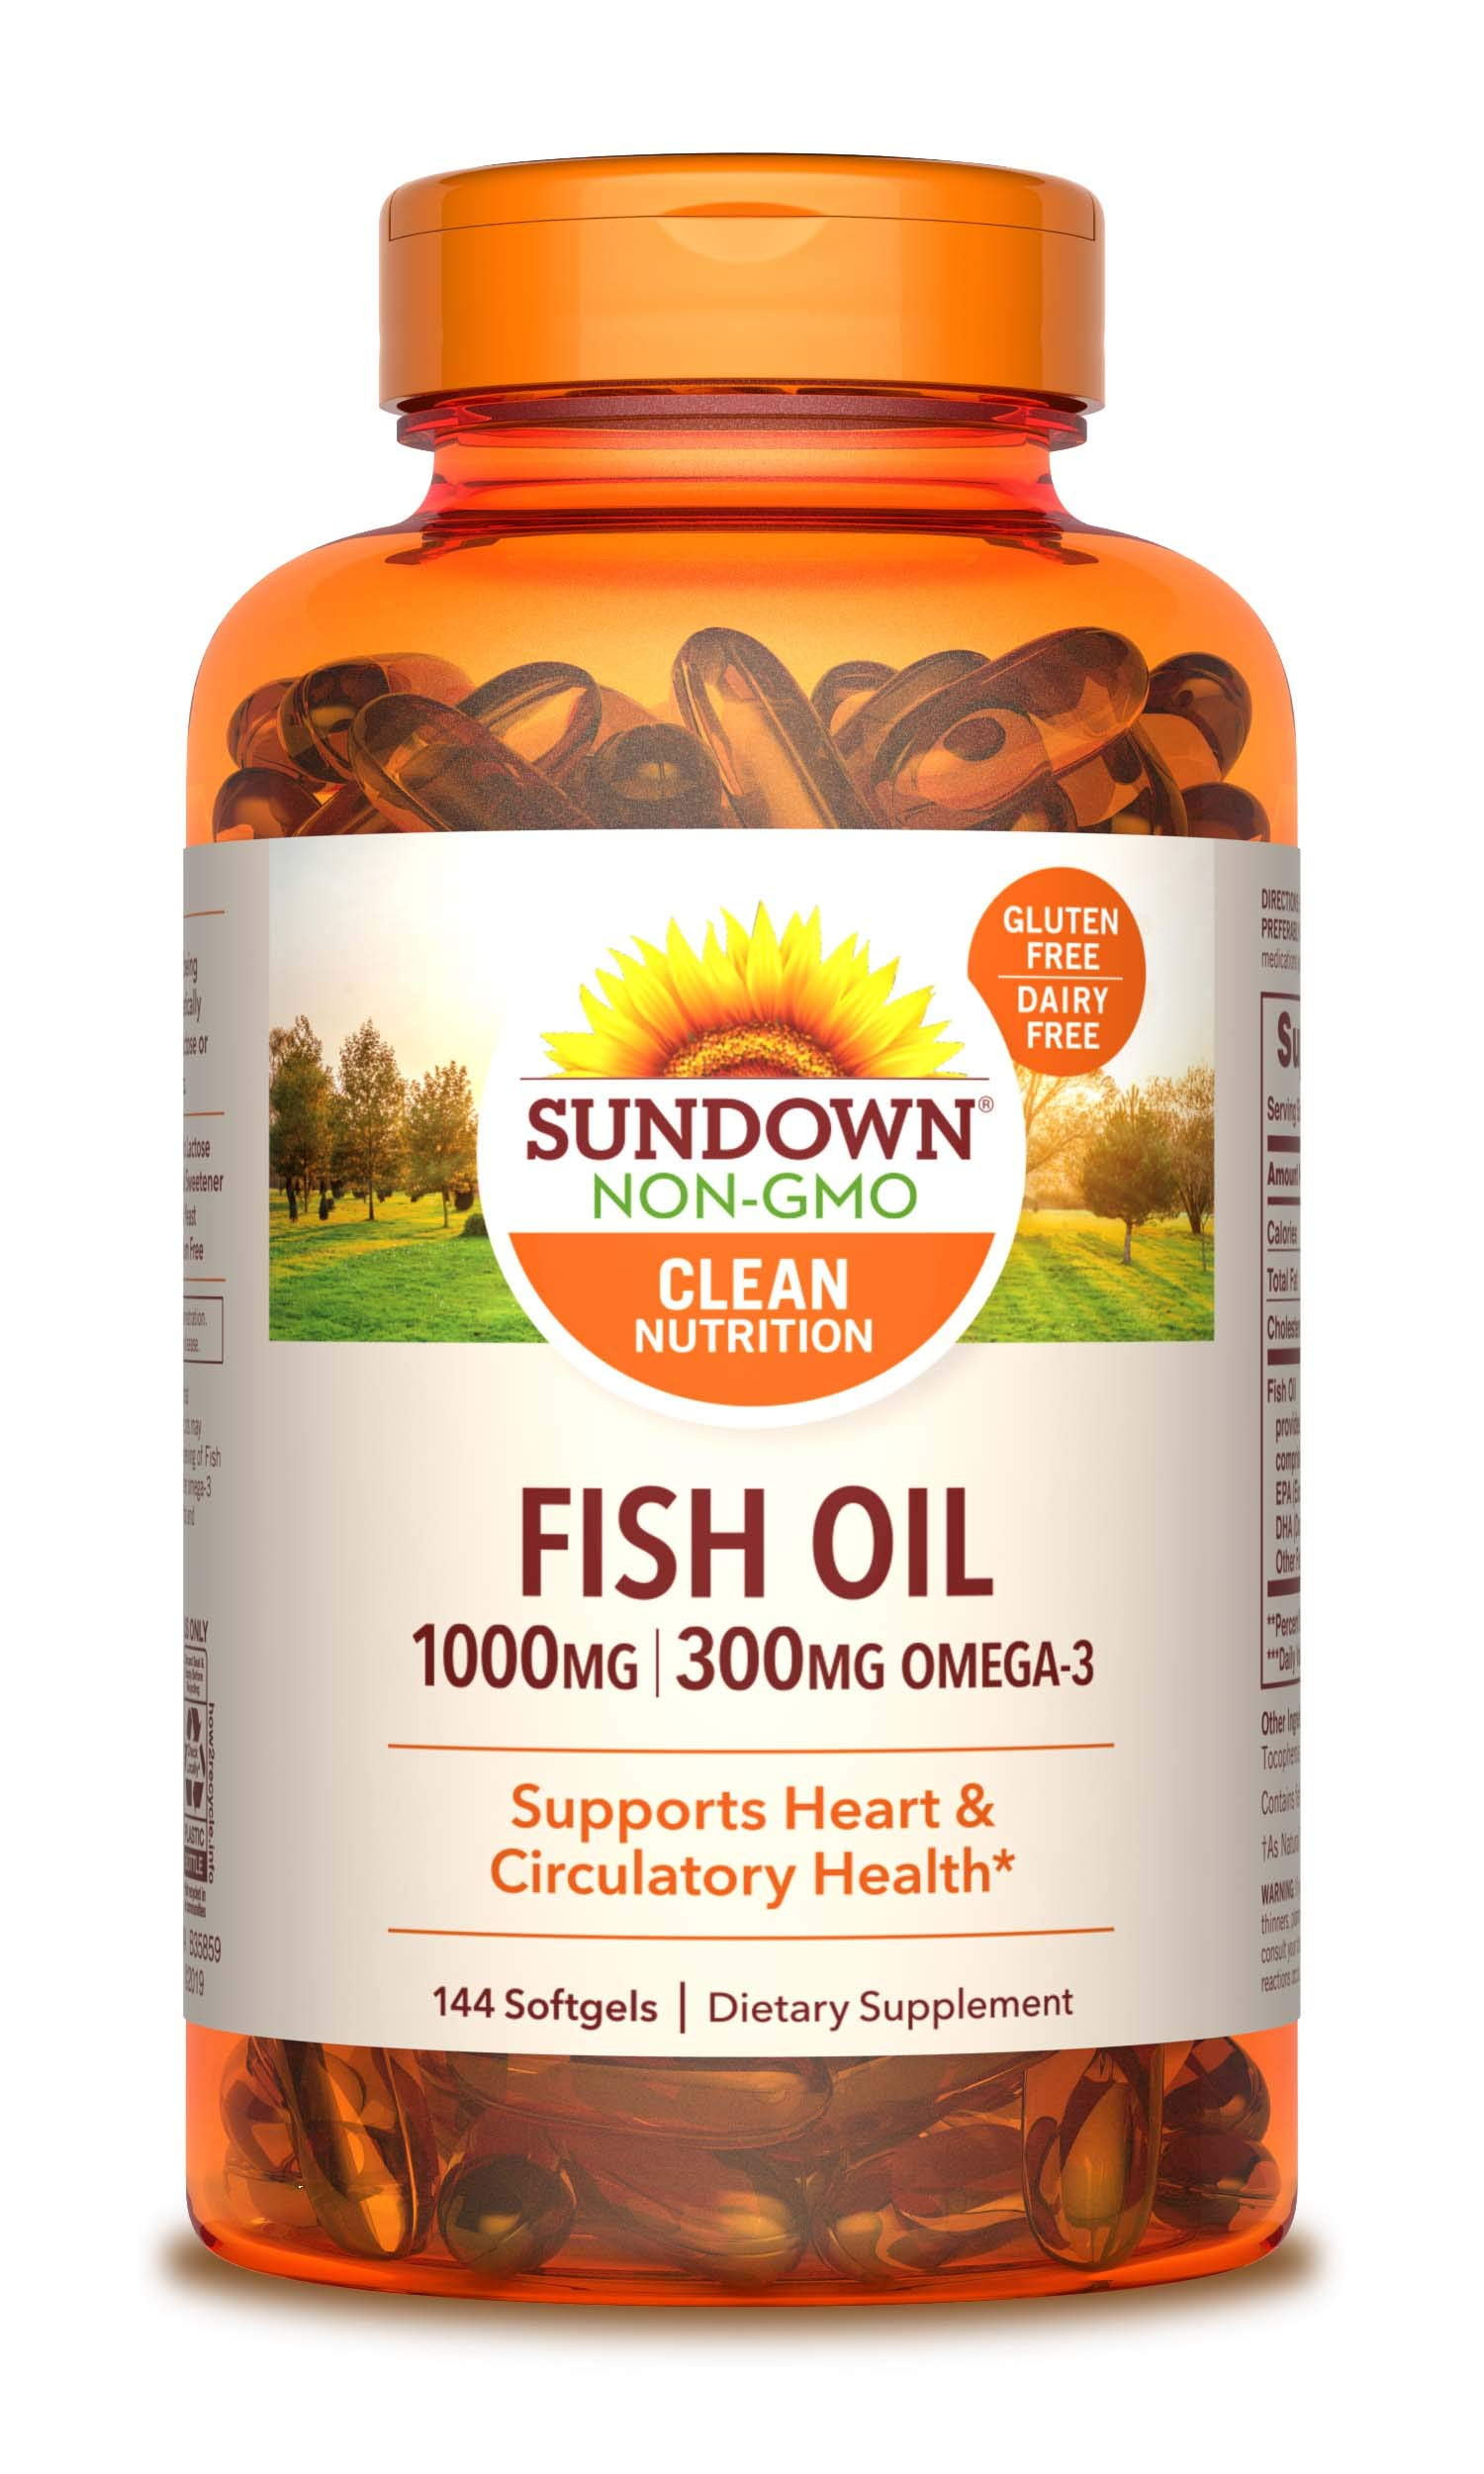 Fish Oil by Sundown, Dietary Supplement, Omega 3, Supports Heart Health, Non-GMO, Free of Gluten, Dairy, Artificial Flavors, 120+24 Bonus Softgels